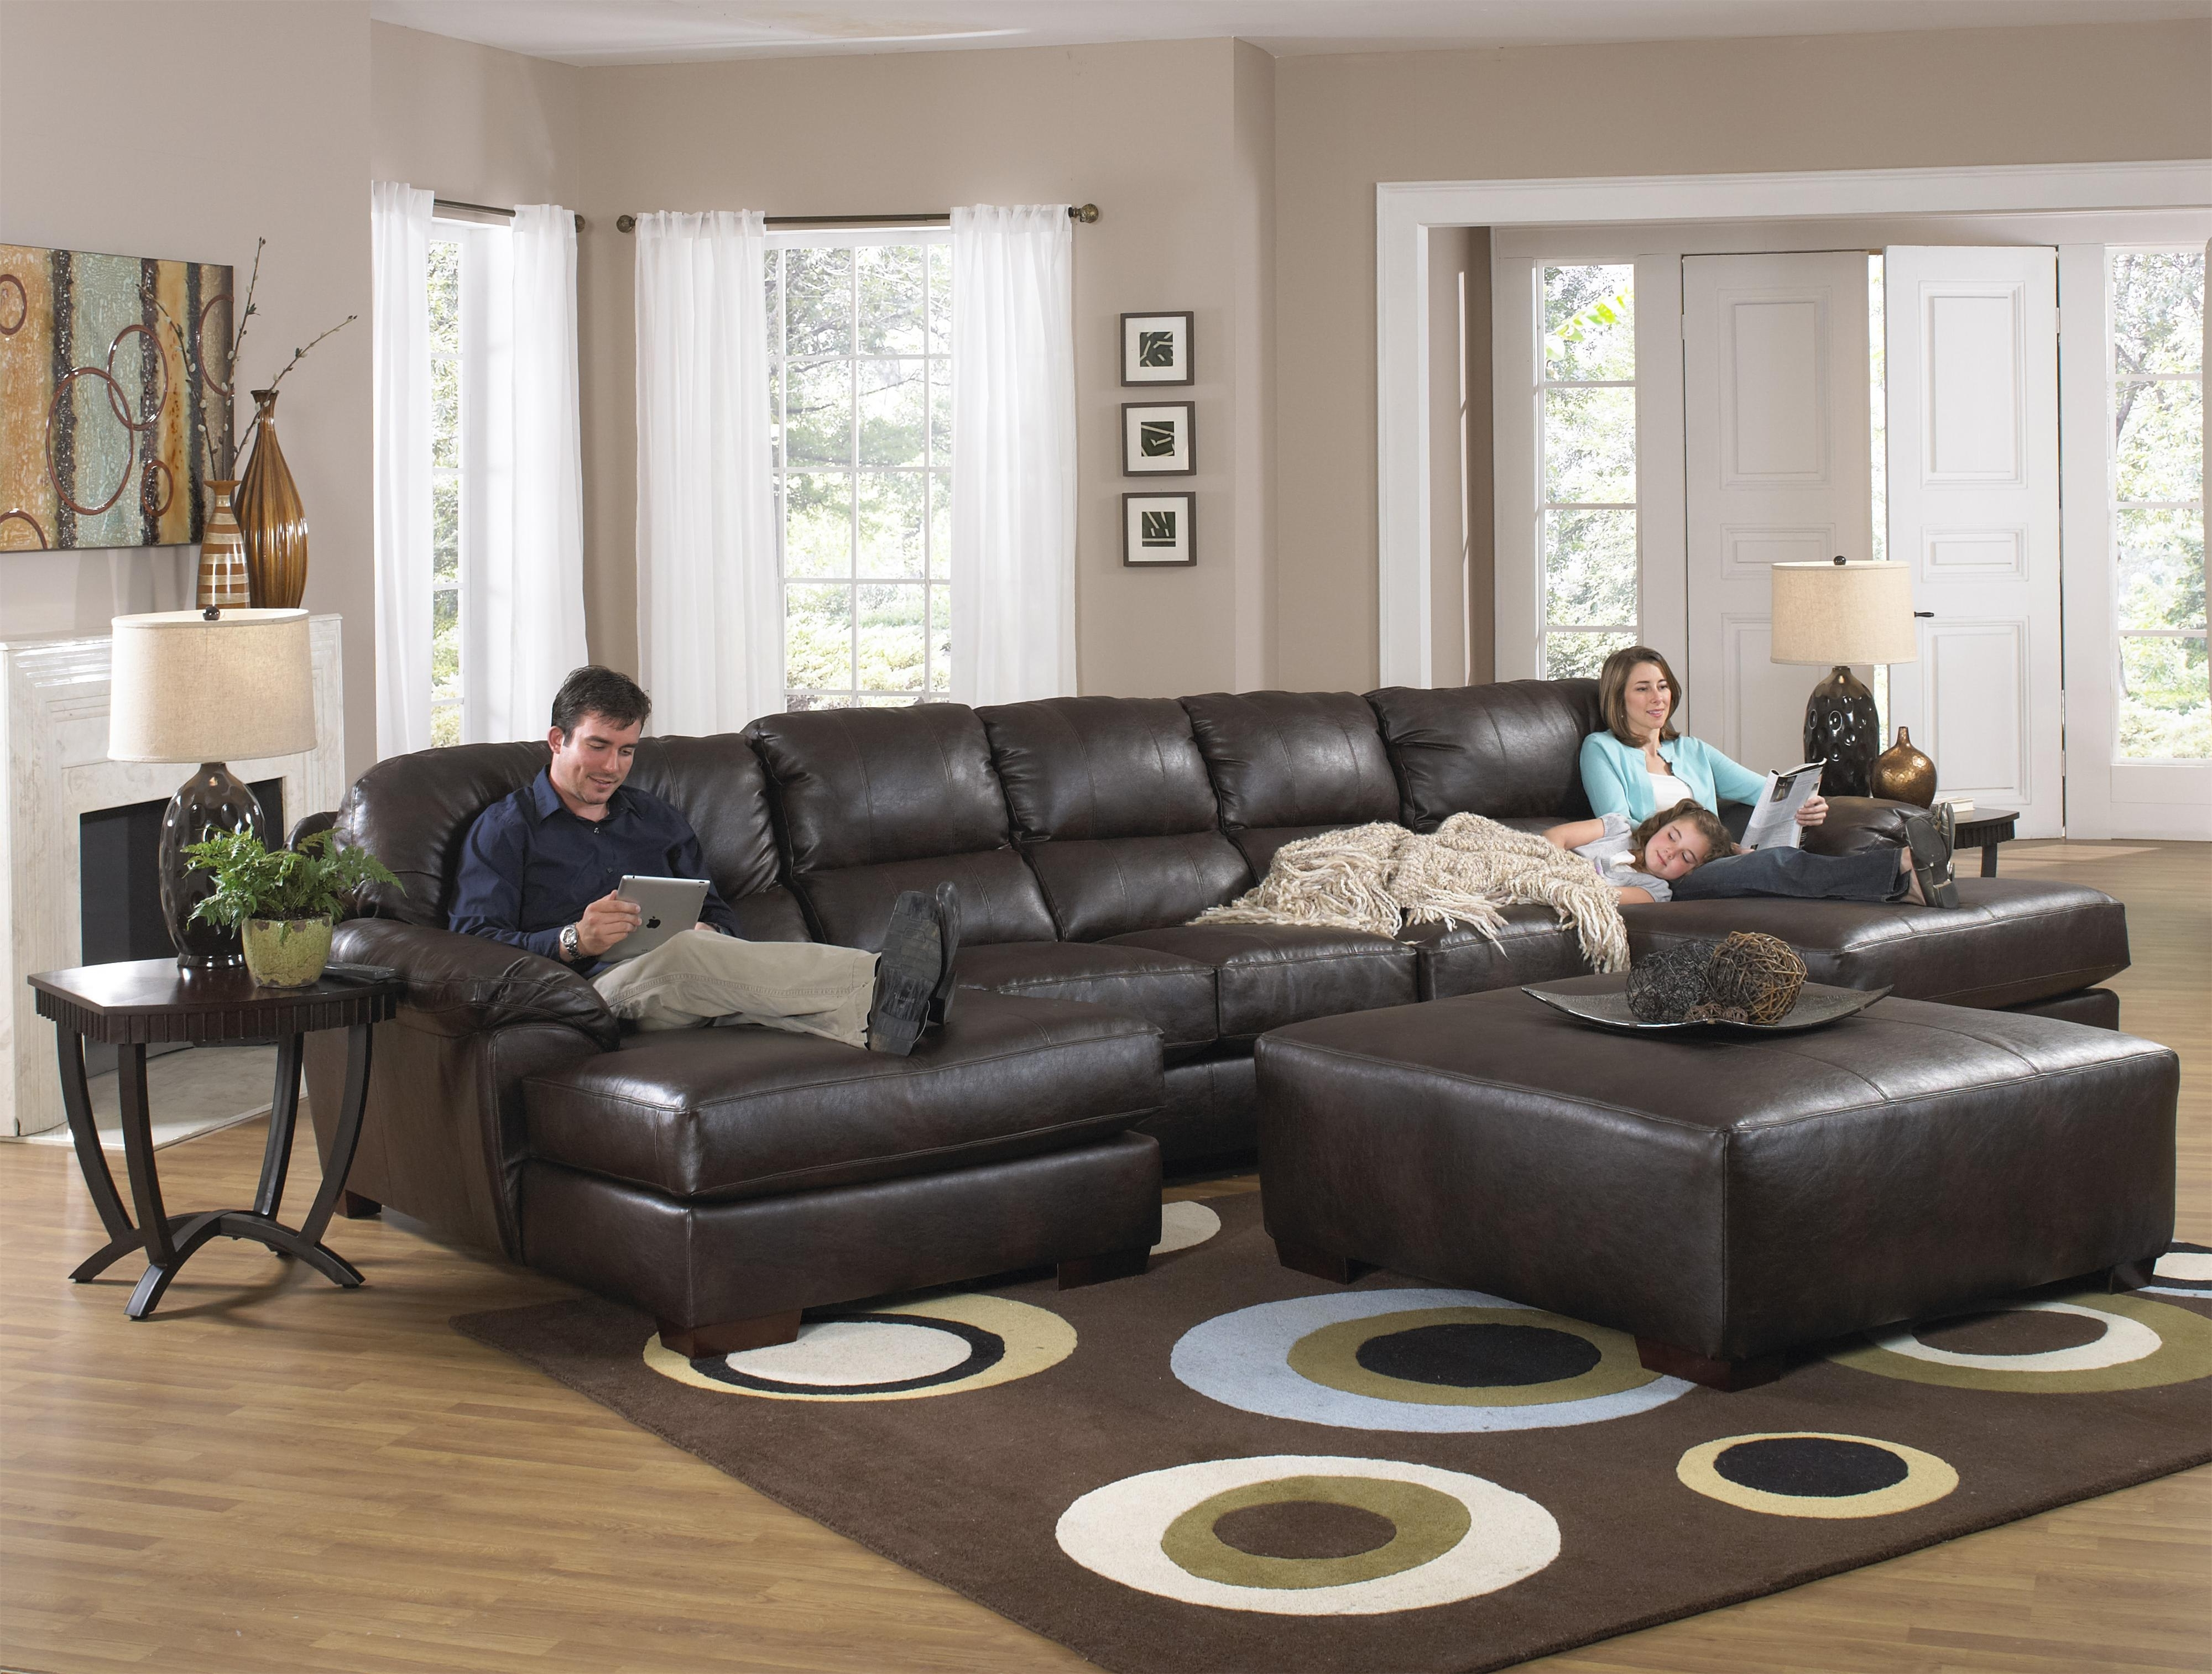 Sectional Couches With Large Ottoman With Trendy Sofa : Beautiful Large Sectional Sofa With Chaise L Shaped Cream (View 17 of 20)